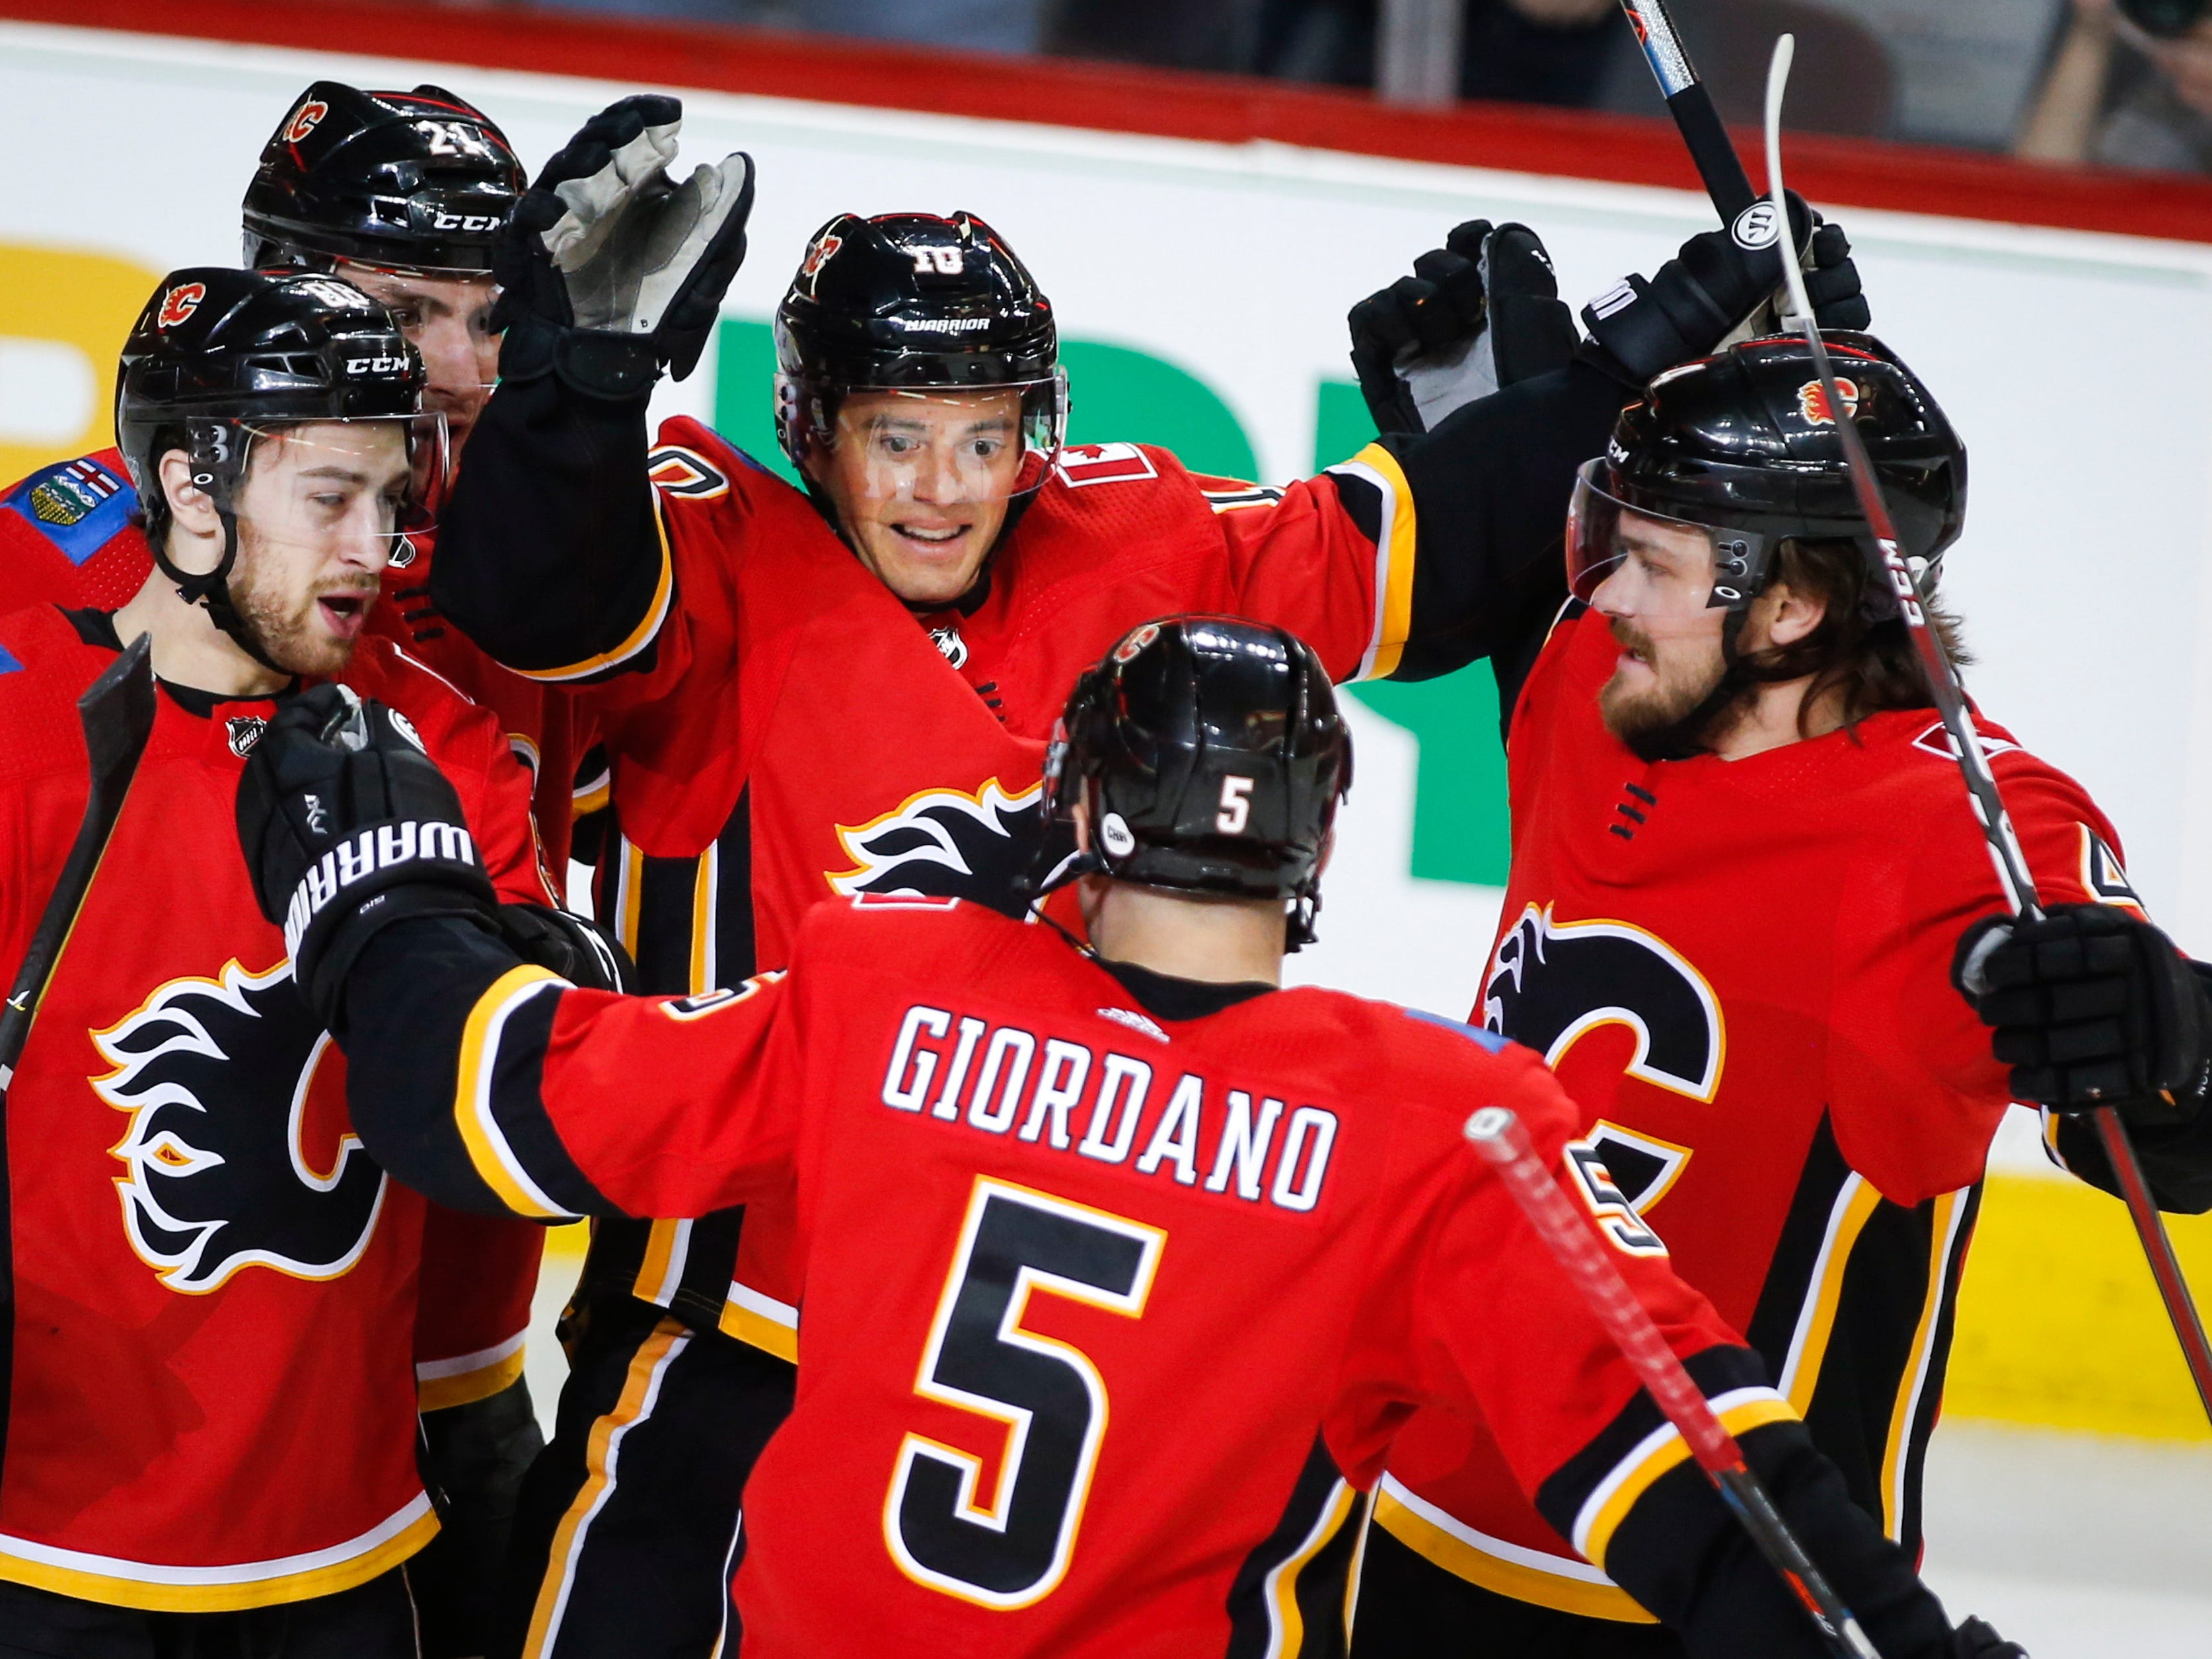 Calgary Flames' Derek Ryan (10) celebrates his goal with teammates during first period NHL hockey action against the Arizona Coyotes in  Calgary, Alberta, Monday, Feb. 18, 2019.